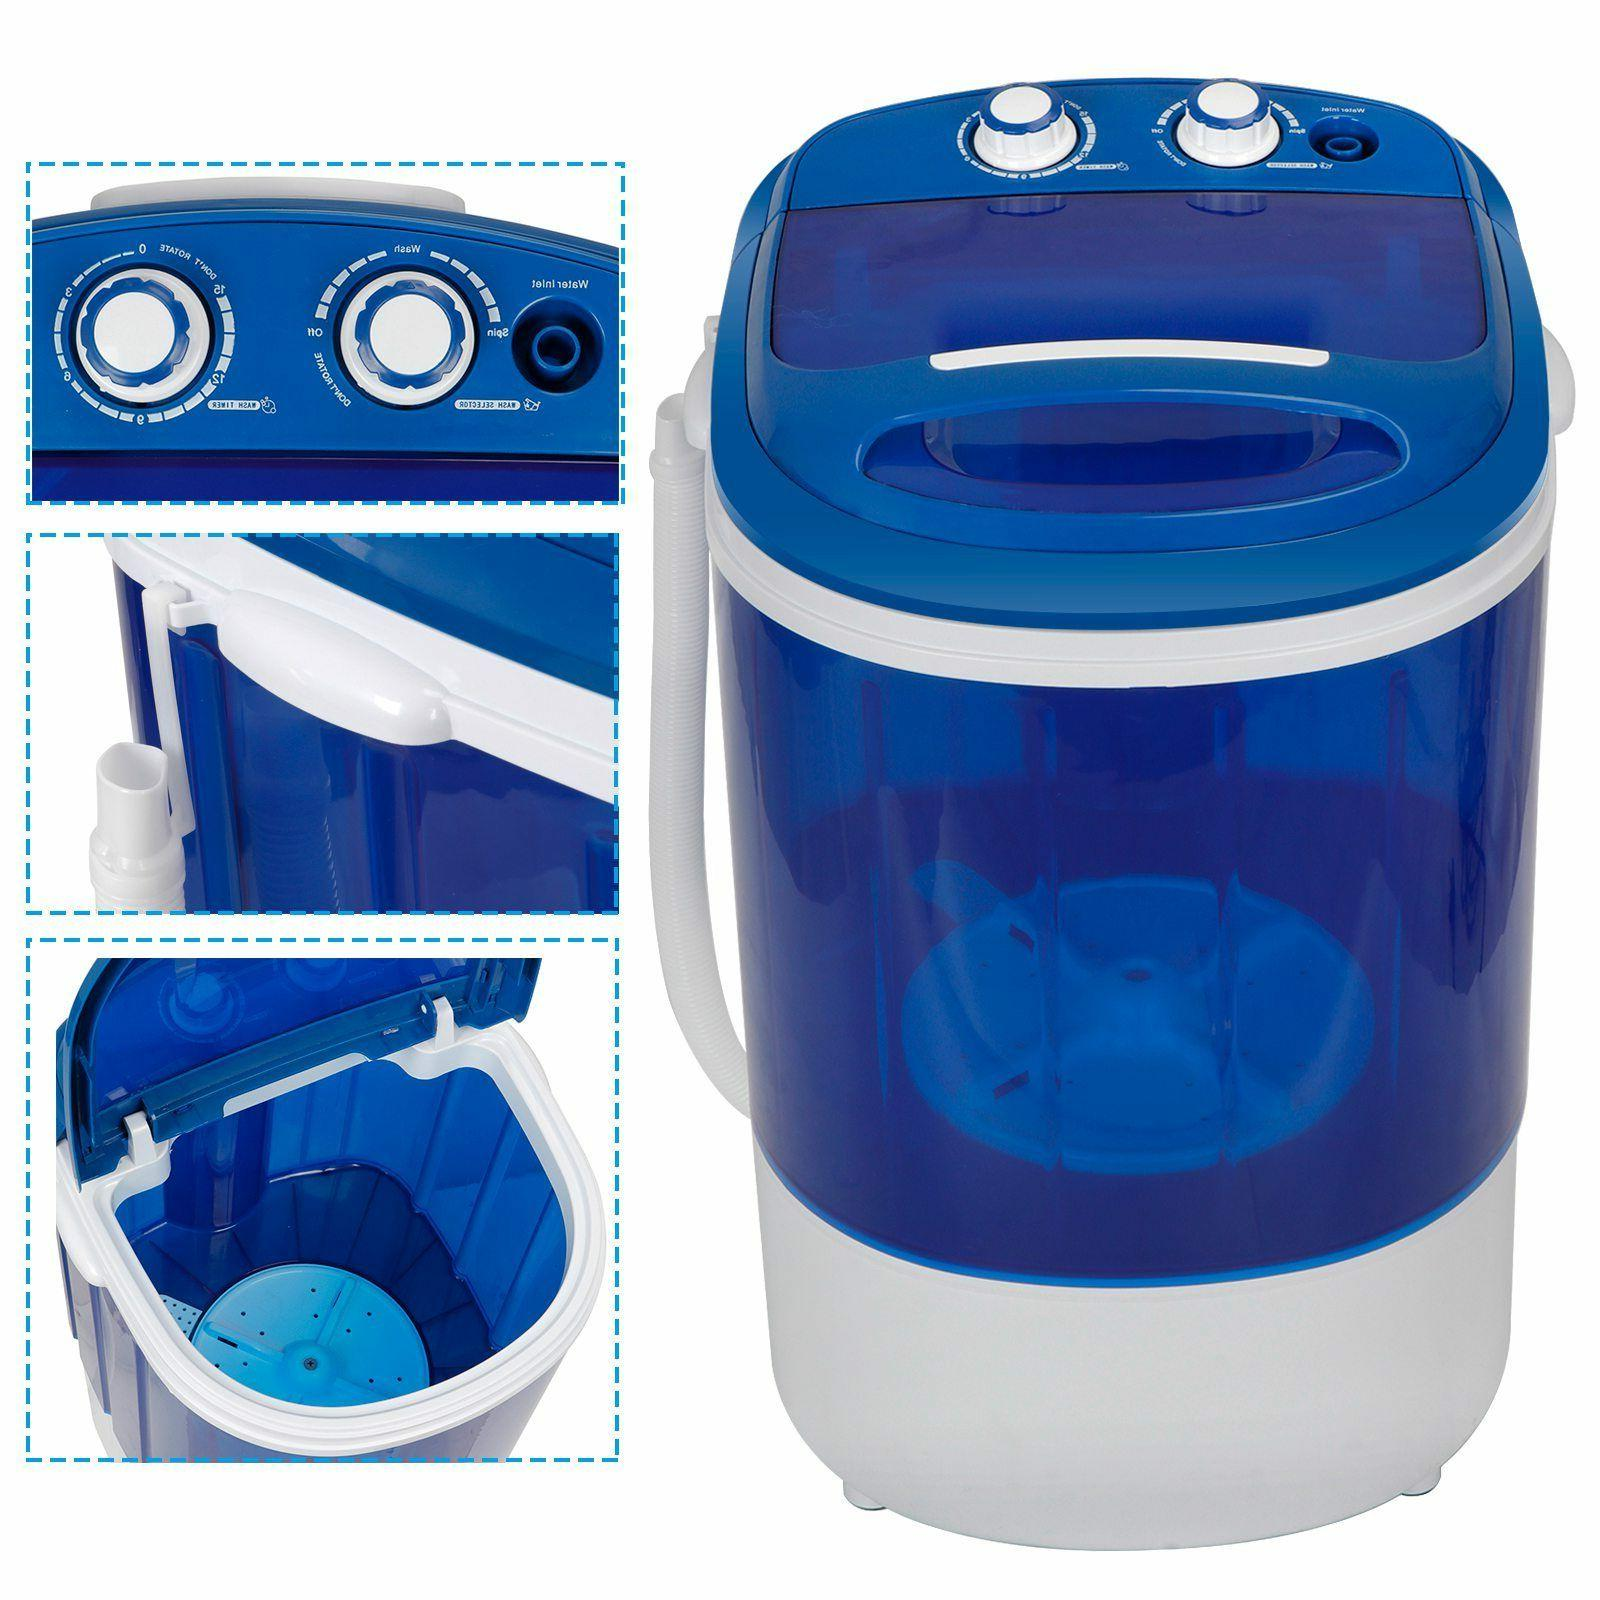 Portable Laundry 9 lbs Compact Washing Machine Idea Dorm Rooms